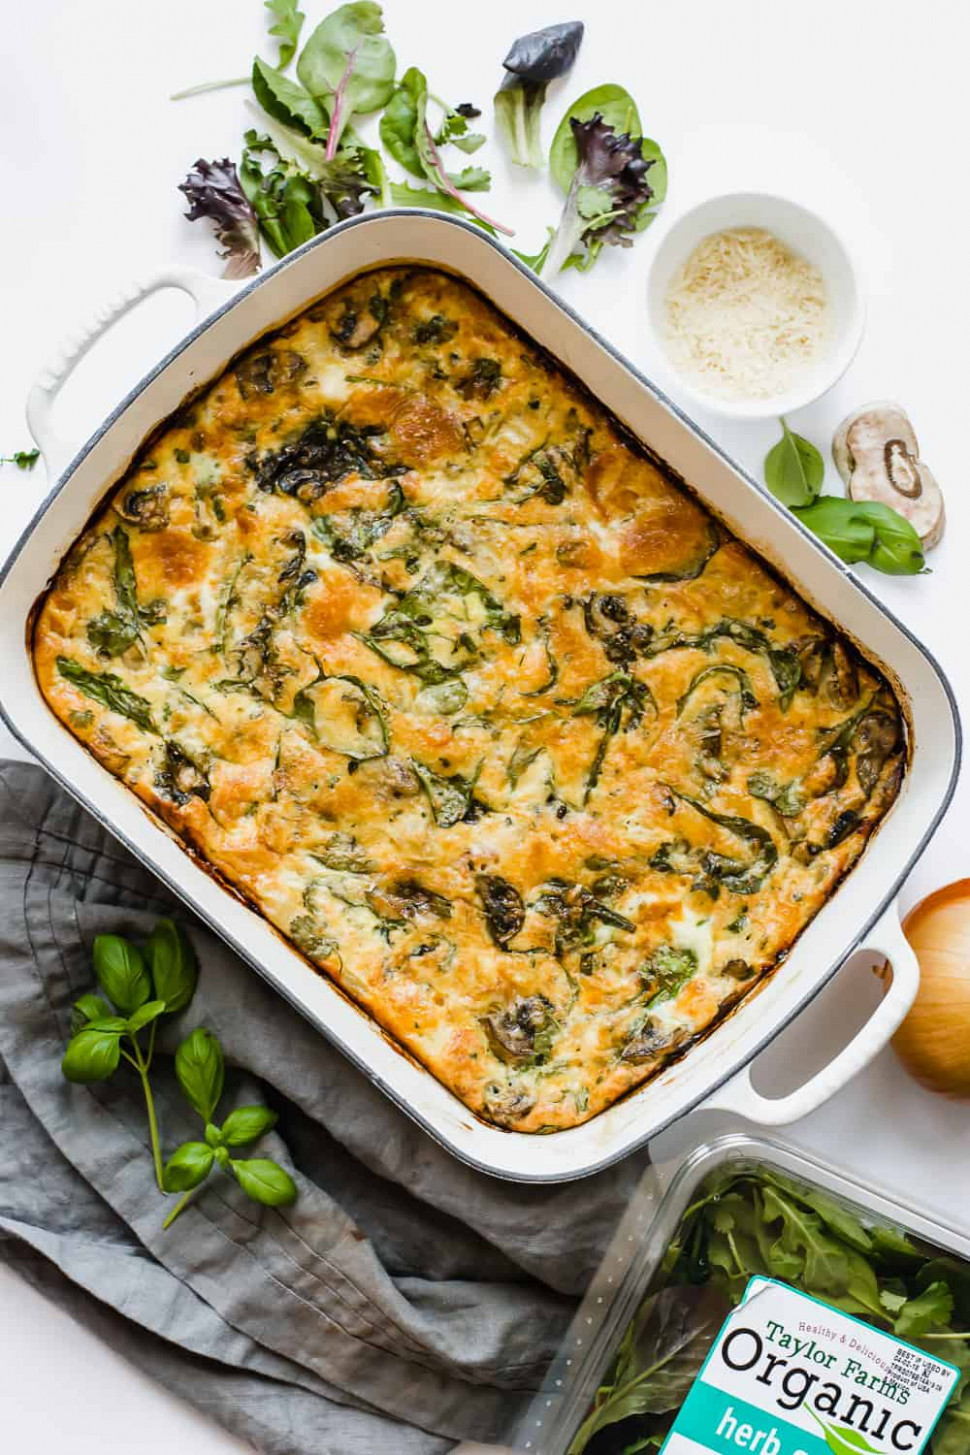 Easy Baked Frittata Recipe with Spinach (Gluten-Free)